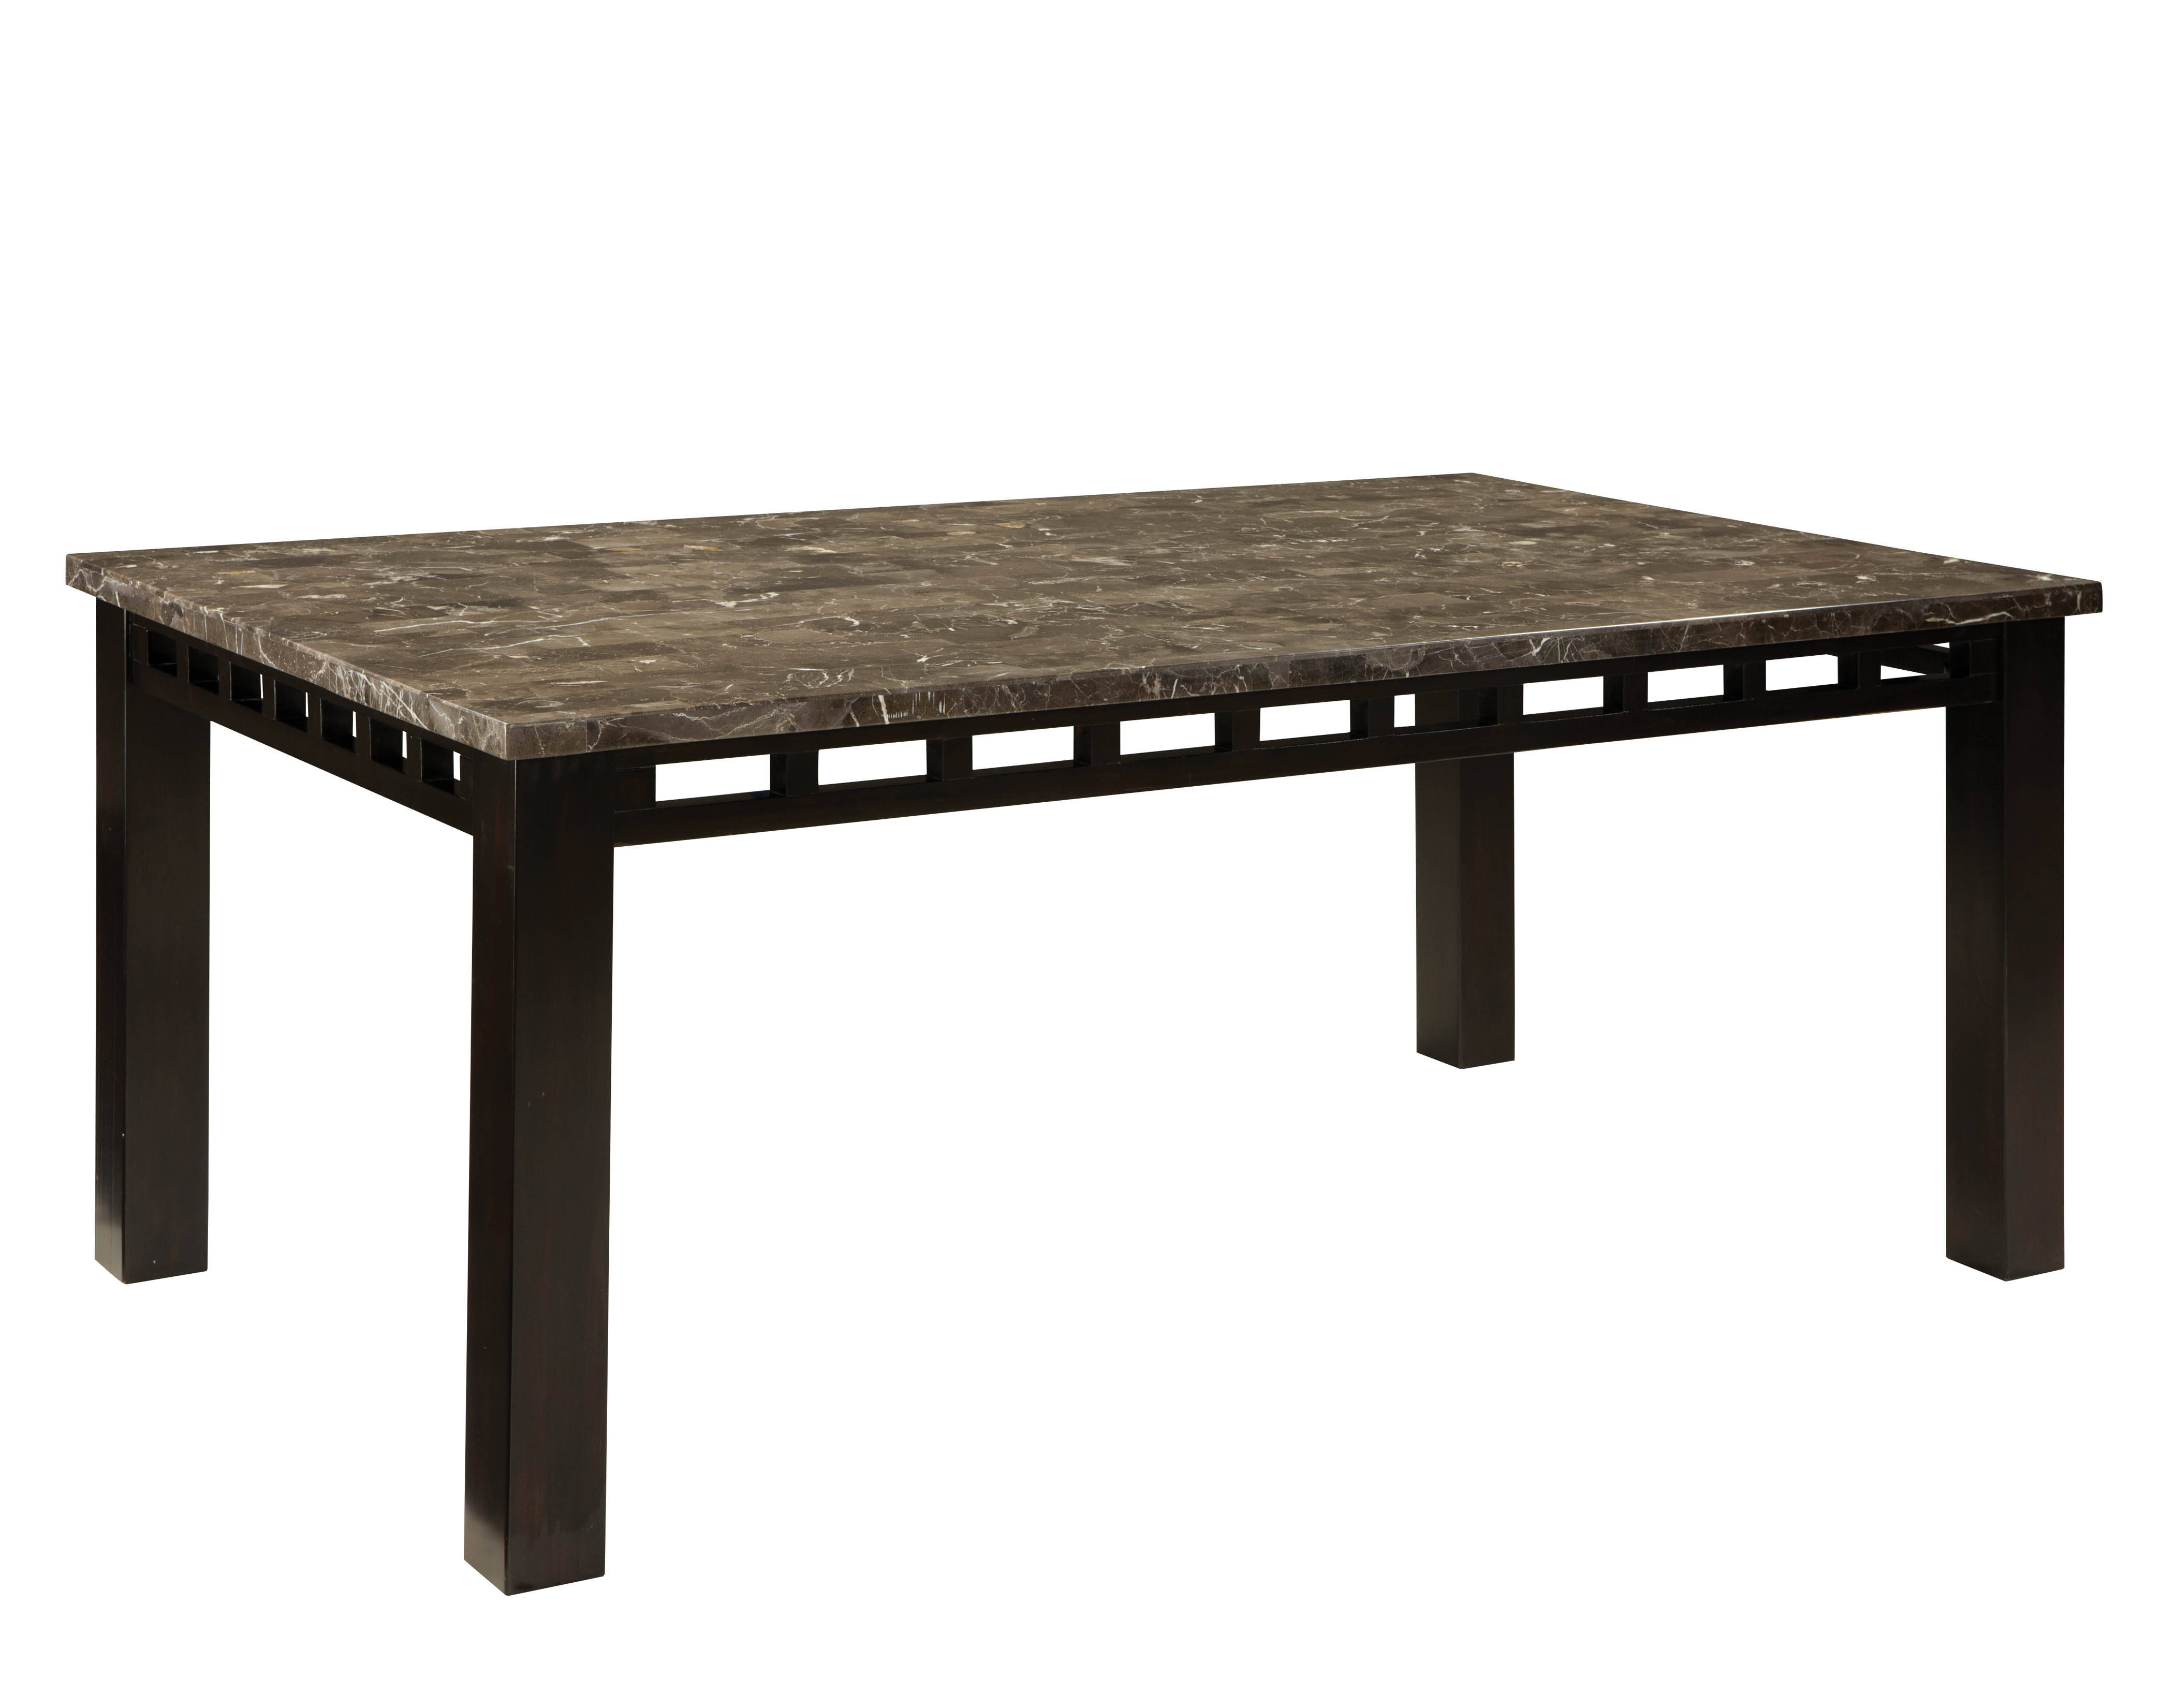 ac72569224be Standard Furniture Gateway Dark Chicory Brown Rectangle Dining Table Click  To Enlarge ...